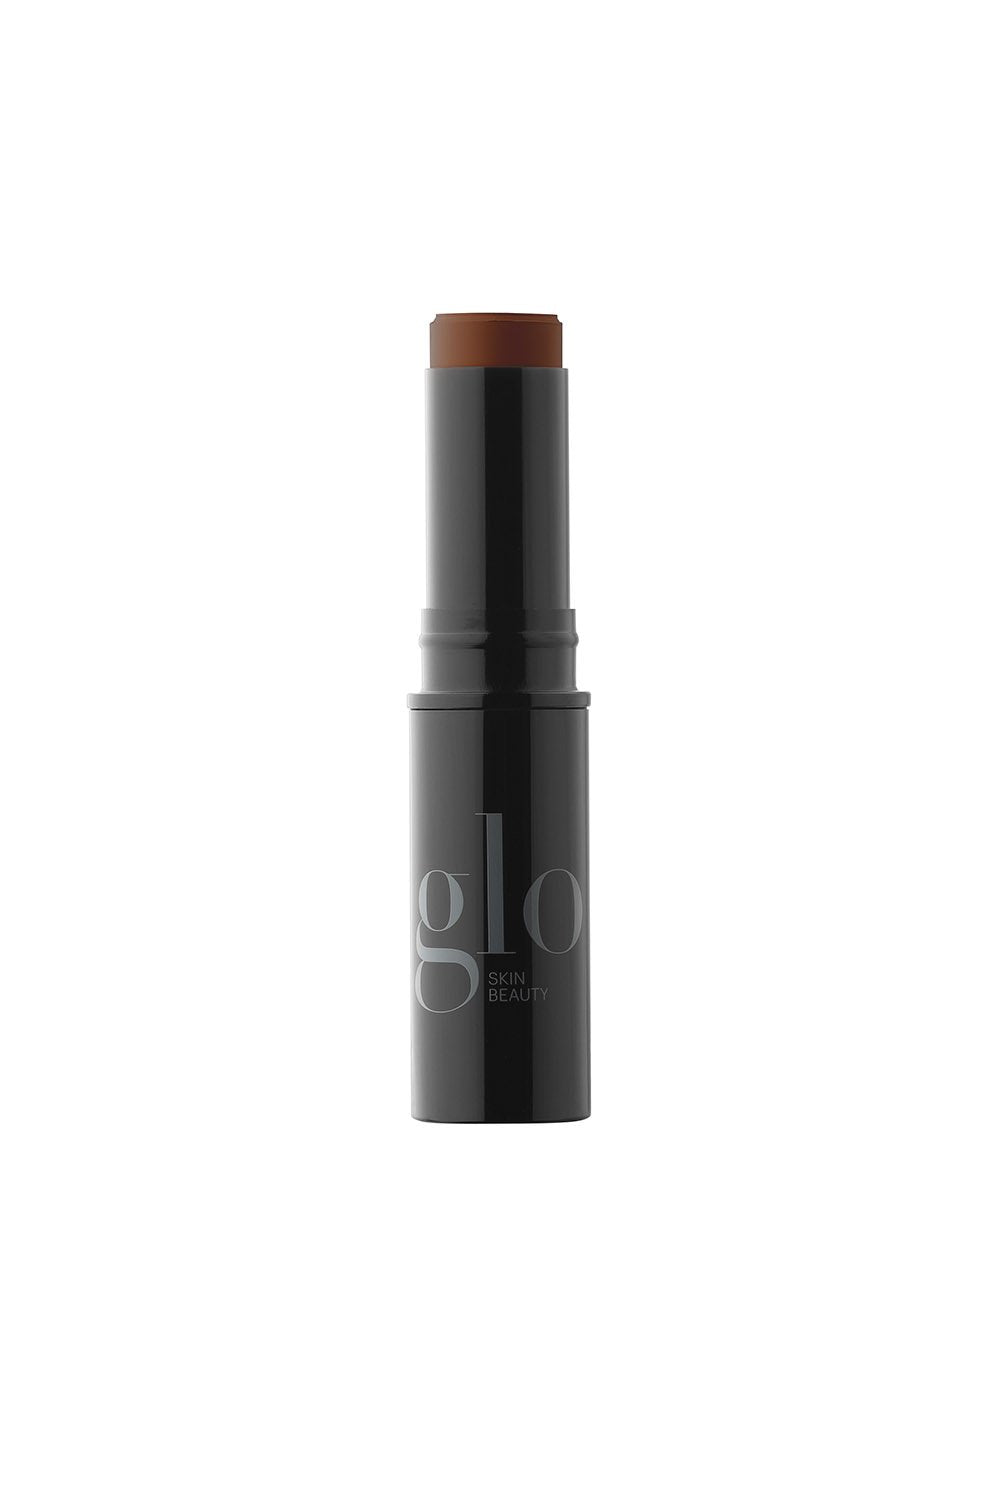 202-2-335 HD Mineral Foundation Stick - Ebony 12C - Tester